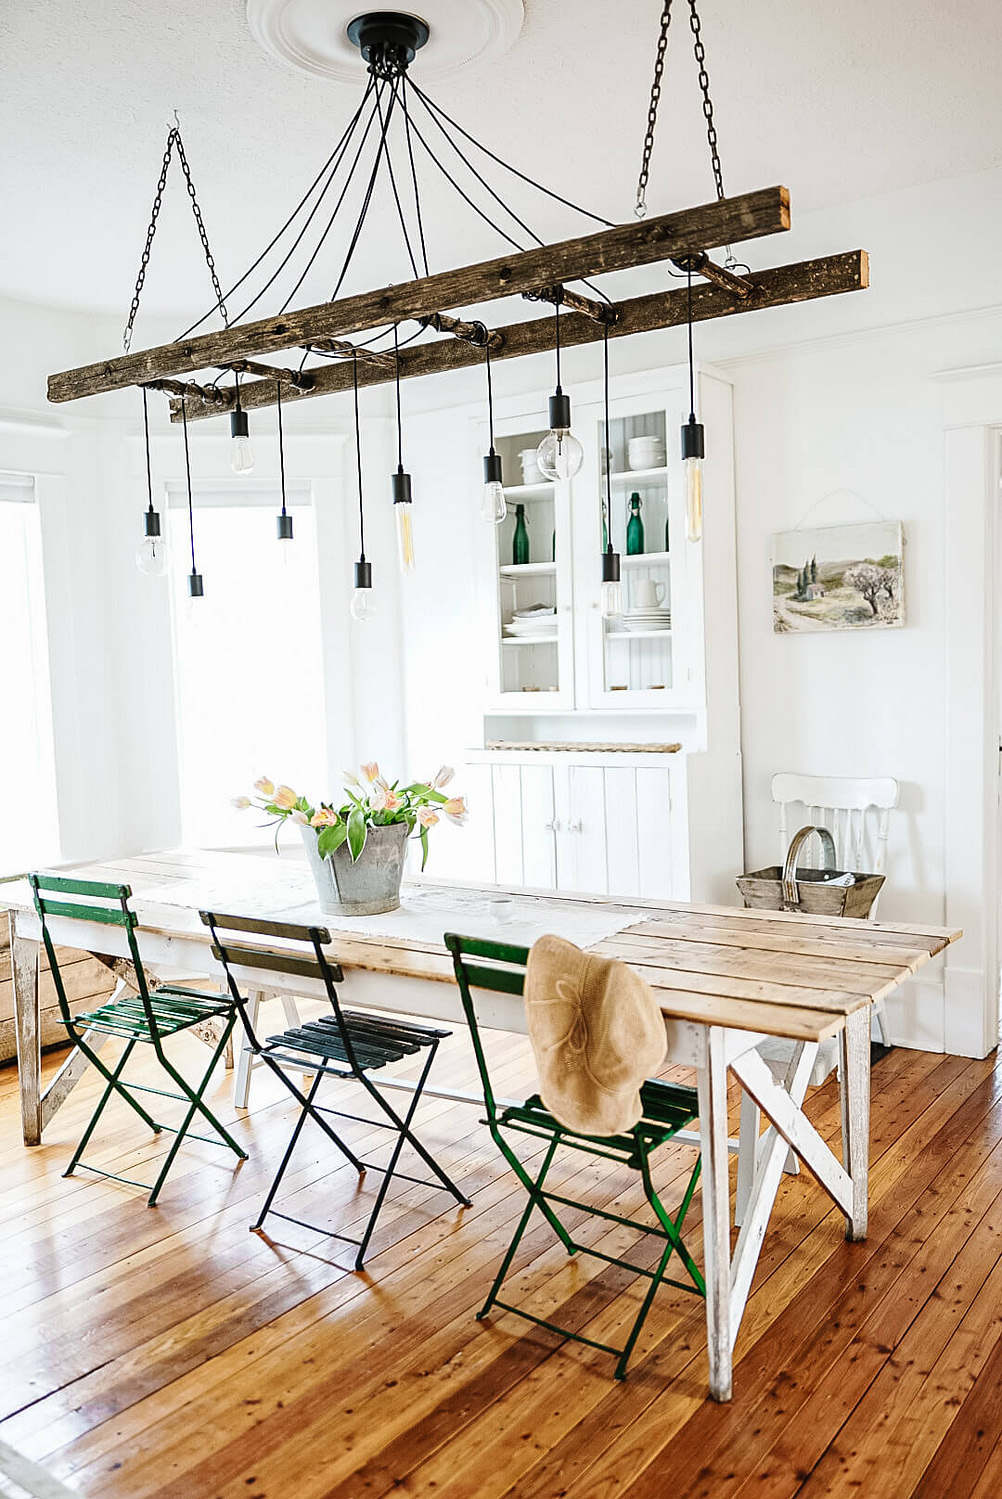 French country kitchen with DIY Edson bulb ladder chandelier